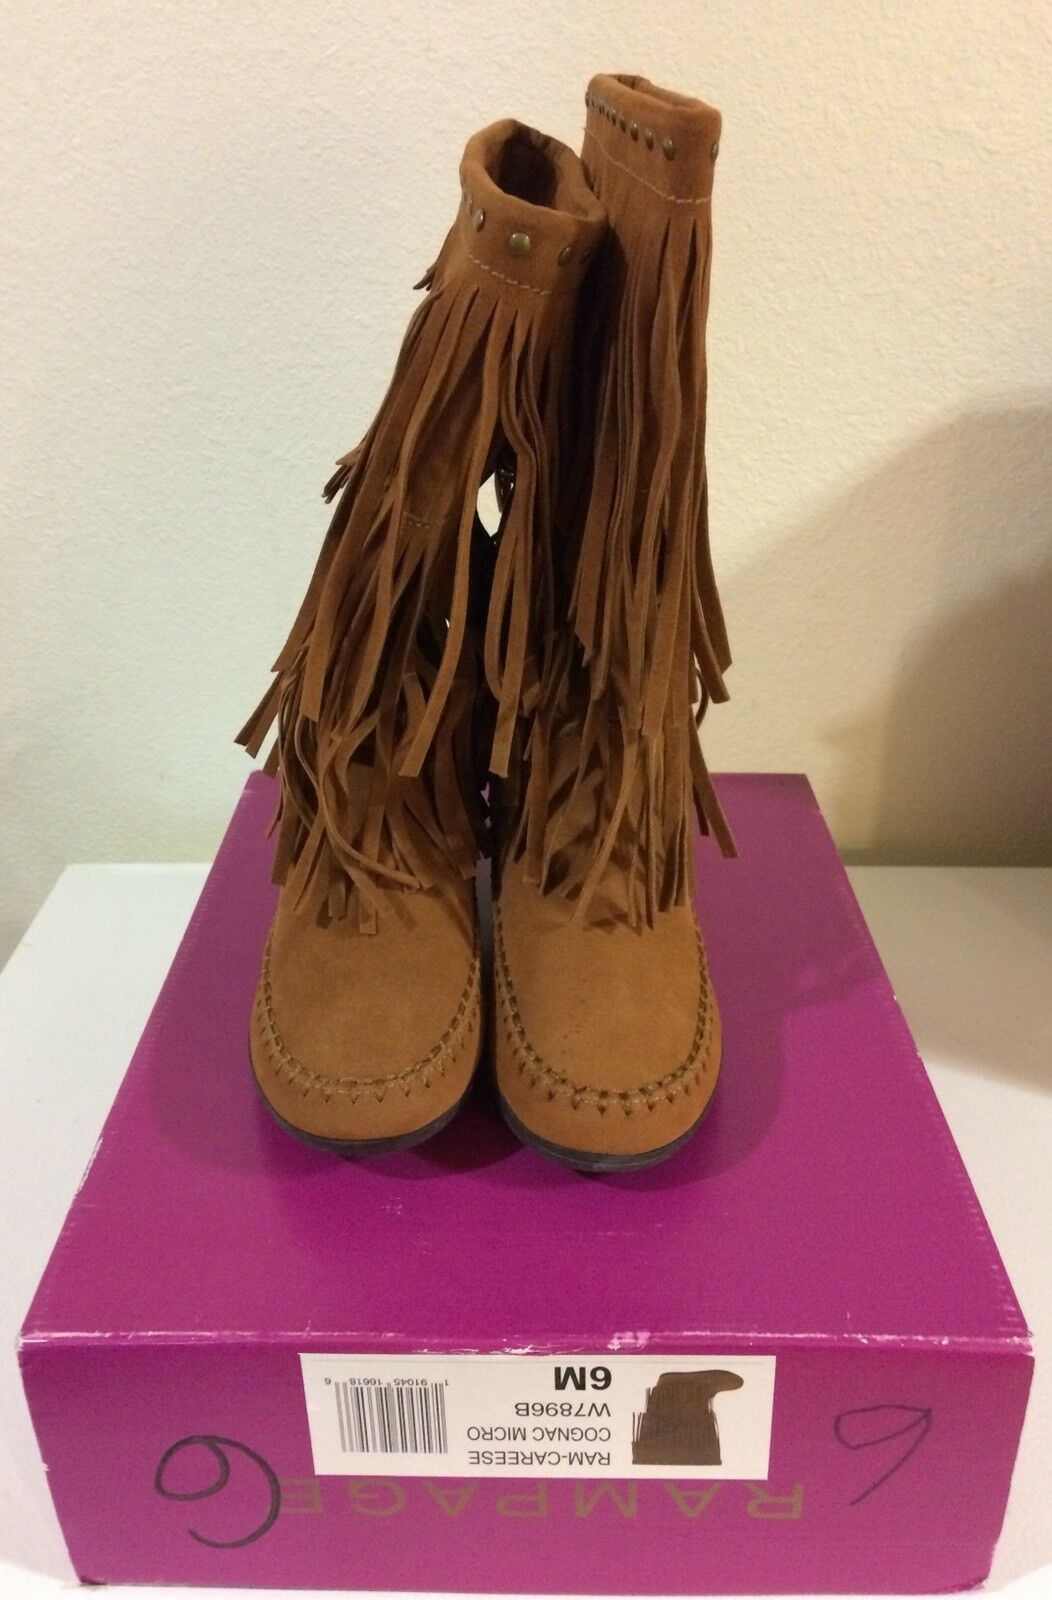 Women's Rampage Ram-Careese Cognac Micro Brown Fringed Boots - - - W7896B  Size 6M 37bed8